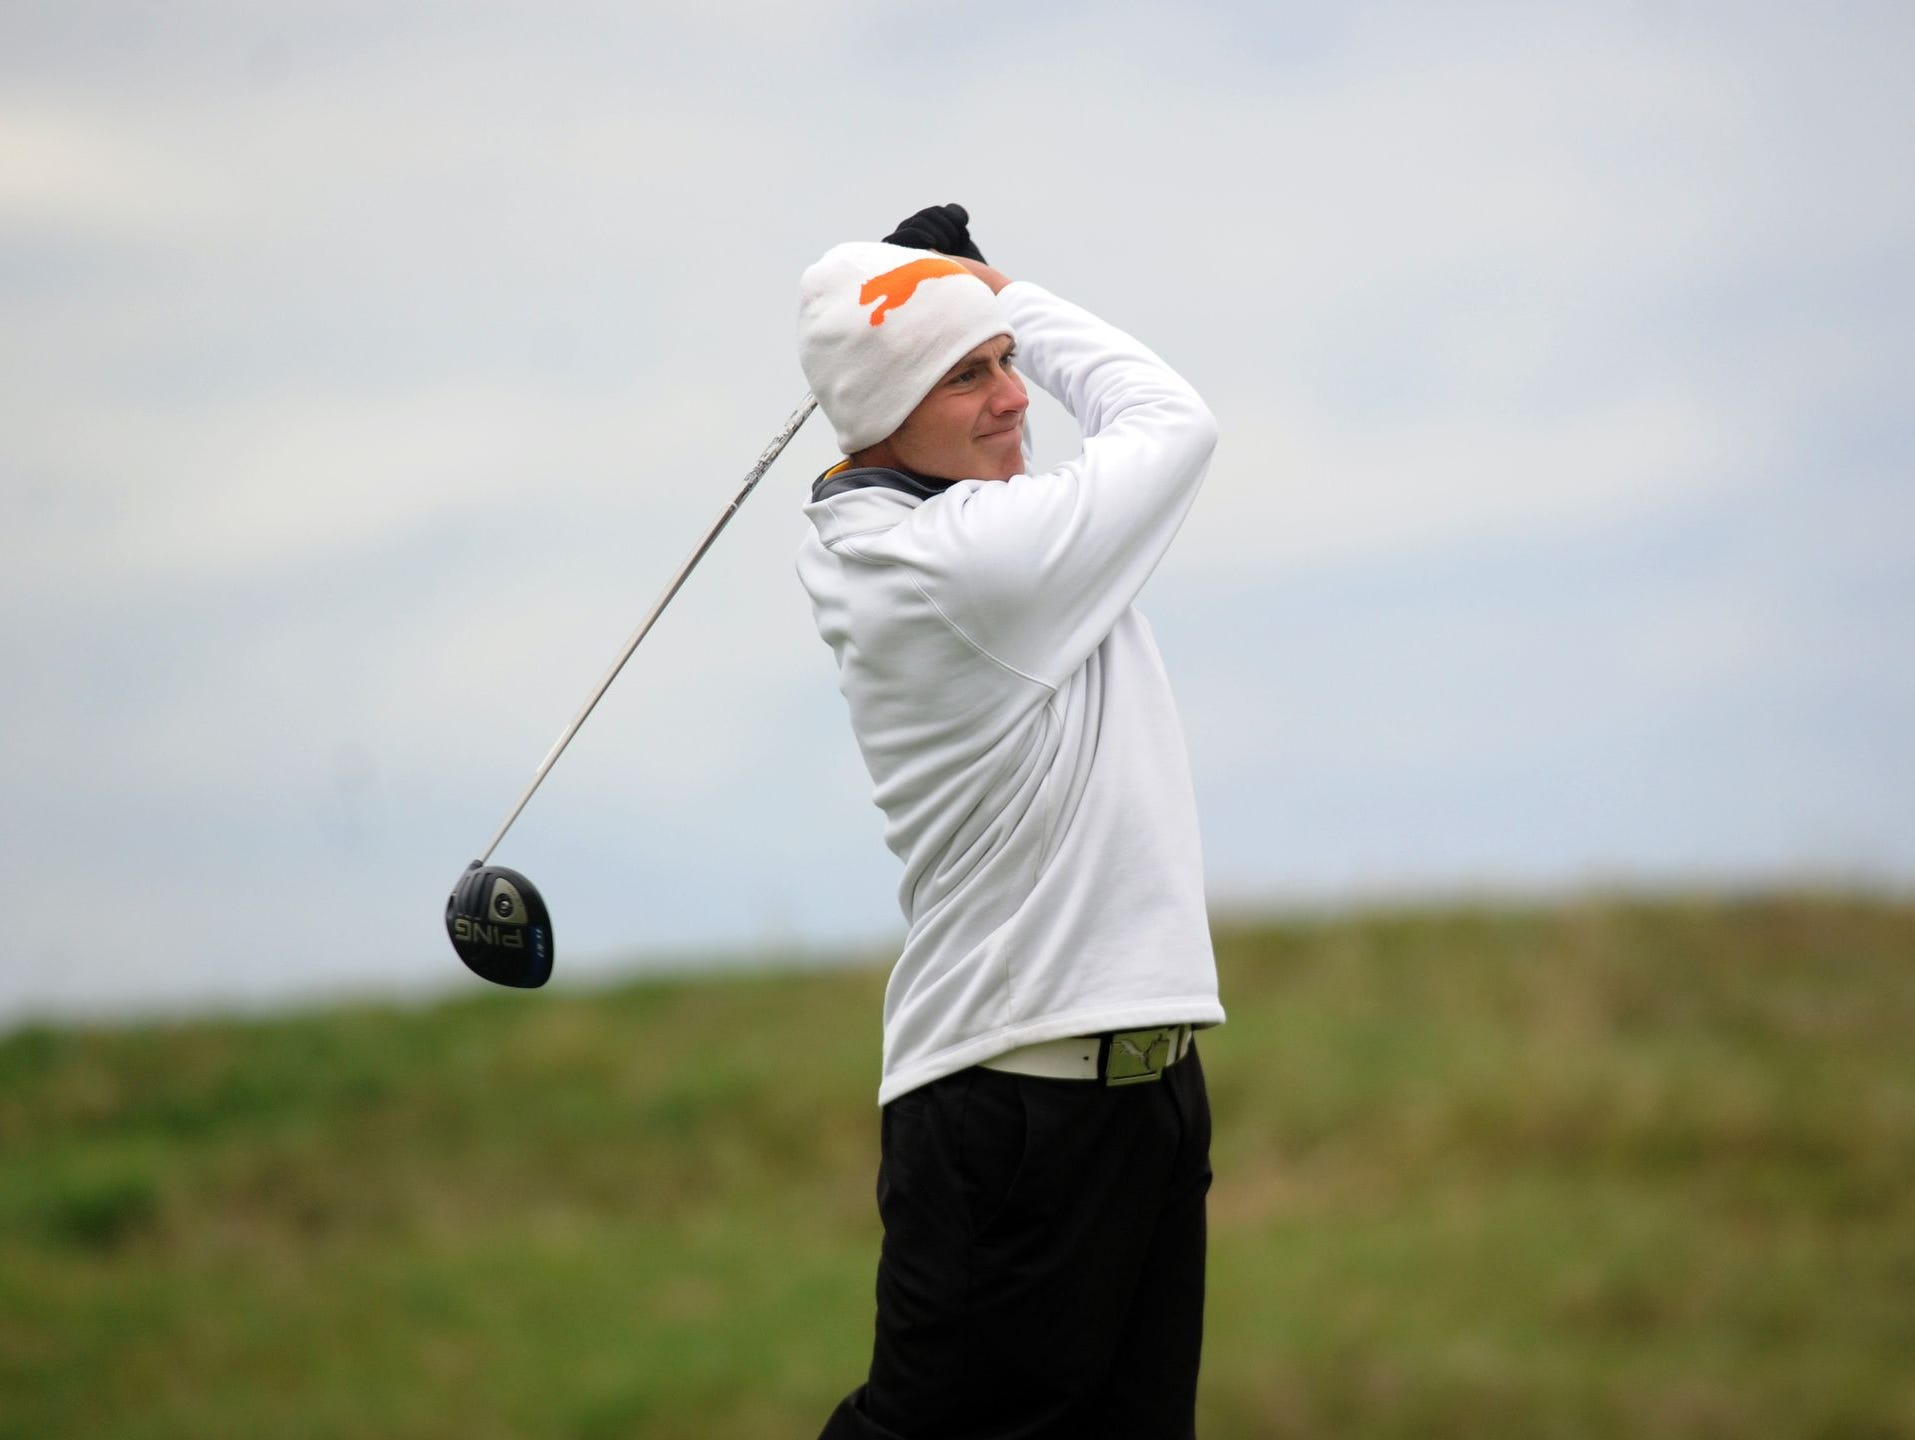 Unioto's Peyton Cooper tees off during the Division II OHSAA state golf tournament. Cooper was named the 2015 Gazette Boys Player of the Year.